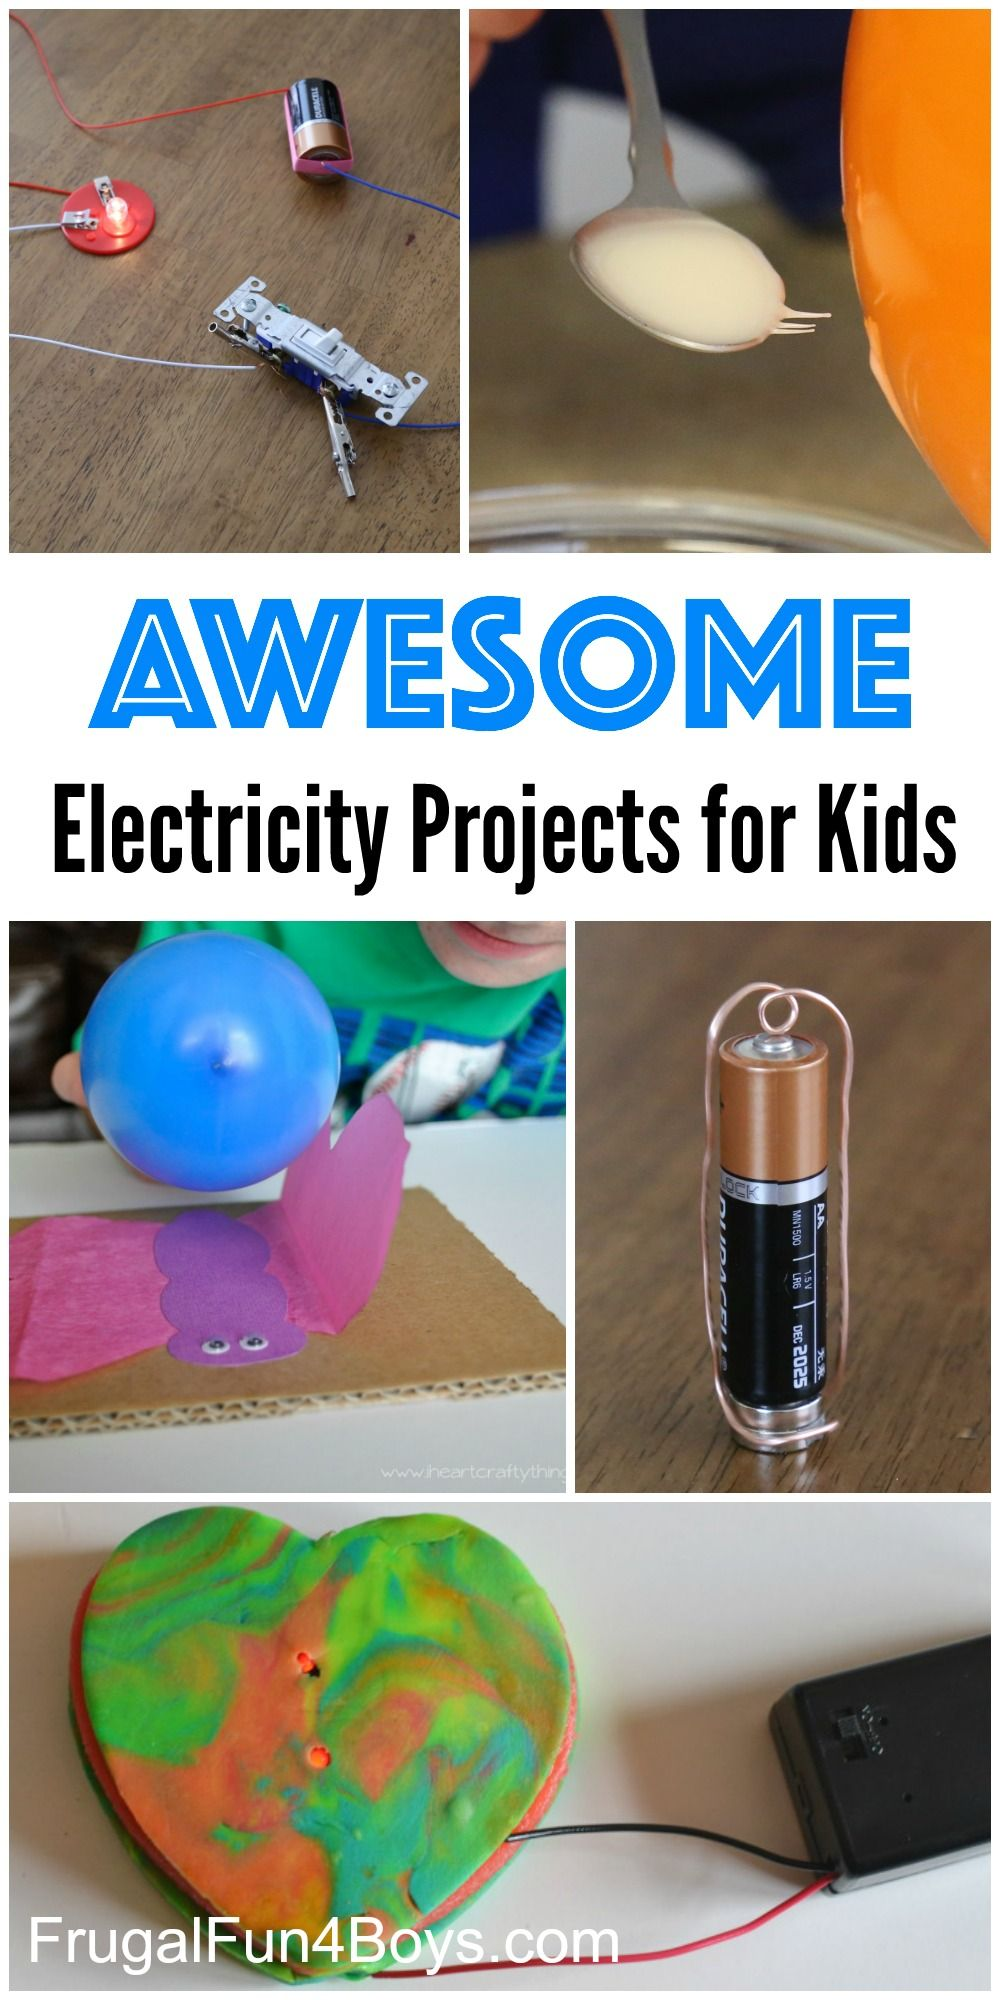 Make A Simple Circuit Electric Circuit Science Poster Ideas For Kids